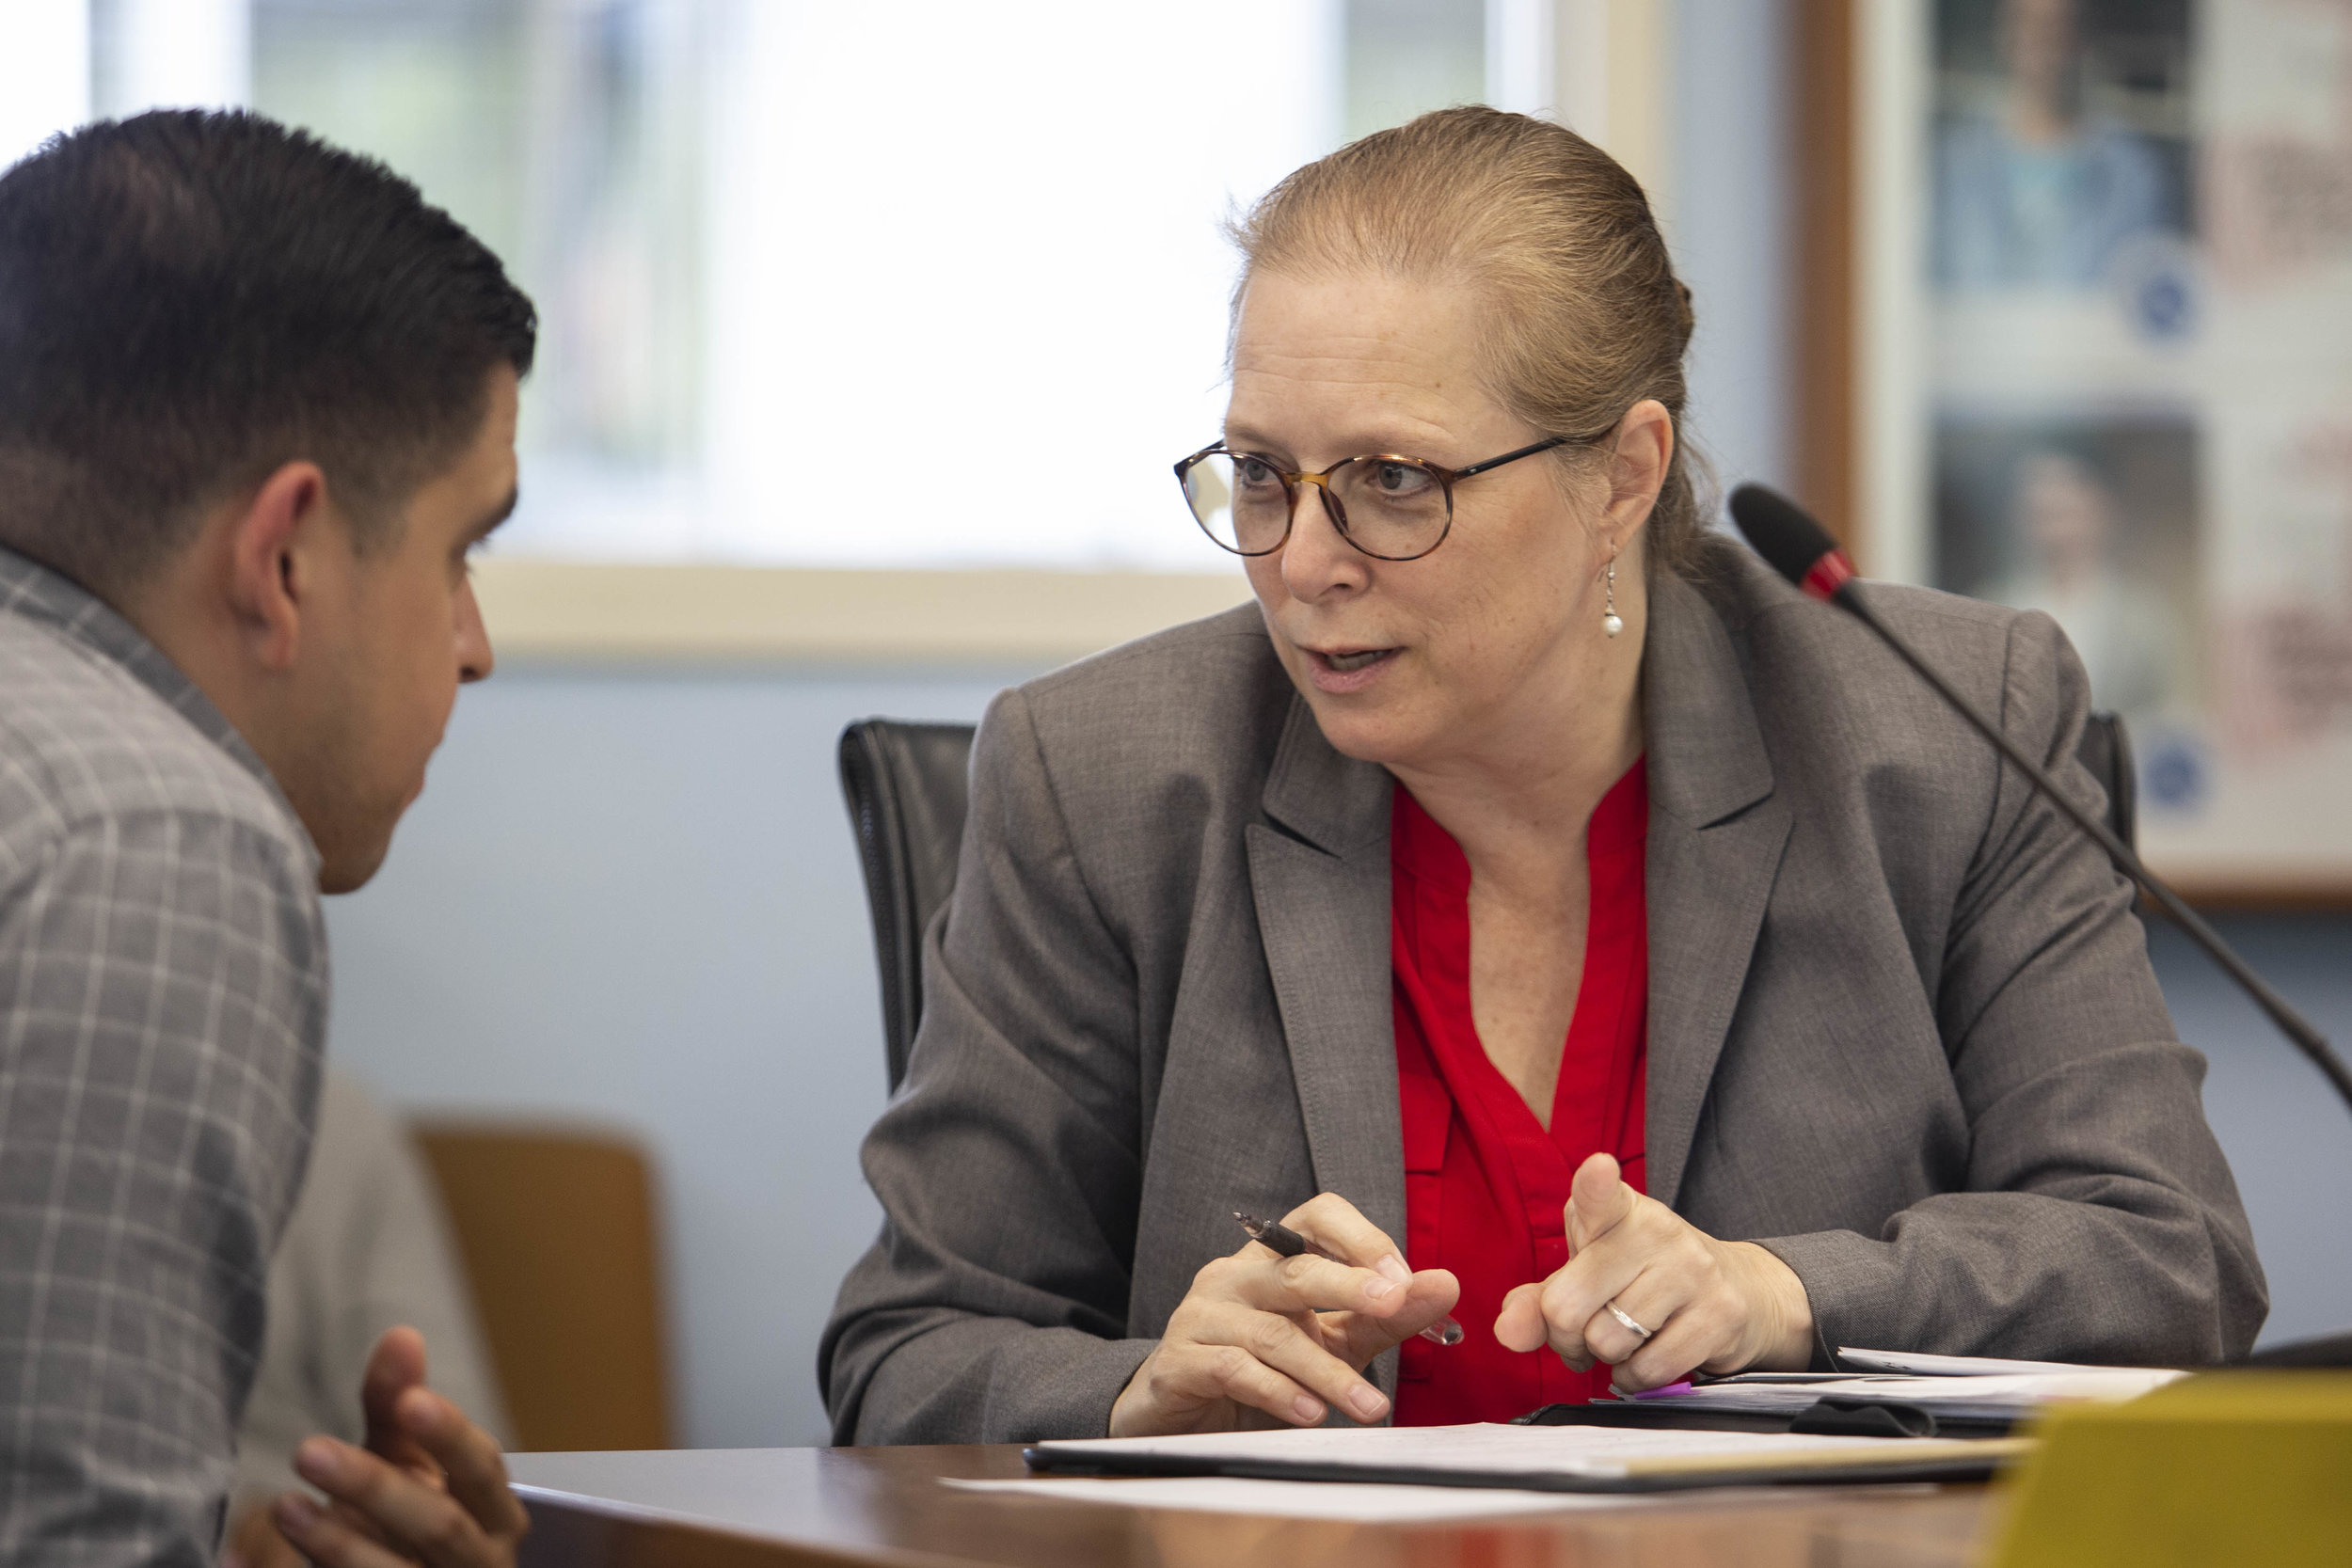 Associate Dean of Students Affairs Dr. Nancy Grass, during the Associated Students (A.S.) budget meeting on Monday May 13, 2019 at Cayton Hall, on the main Campus of Santa Monica College in Santa Monica, Calif. (Yasamin Jtehrani / The corsair)